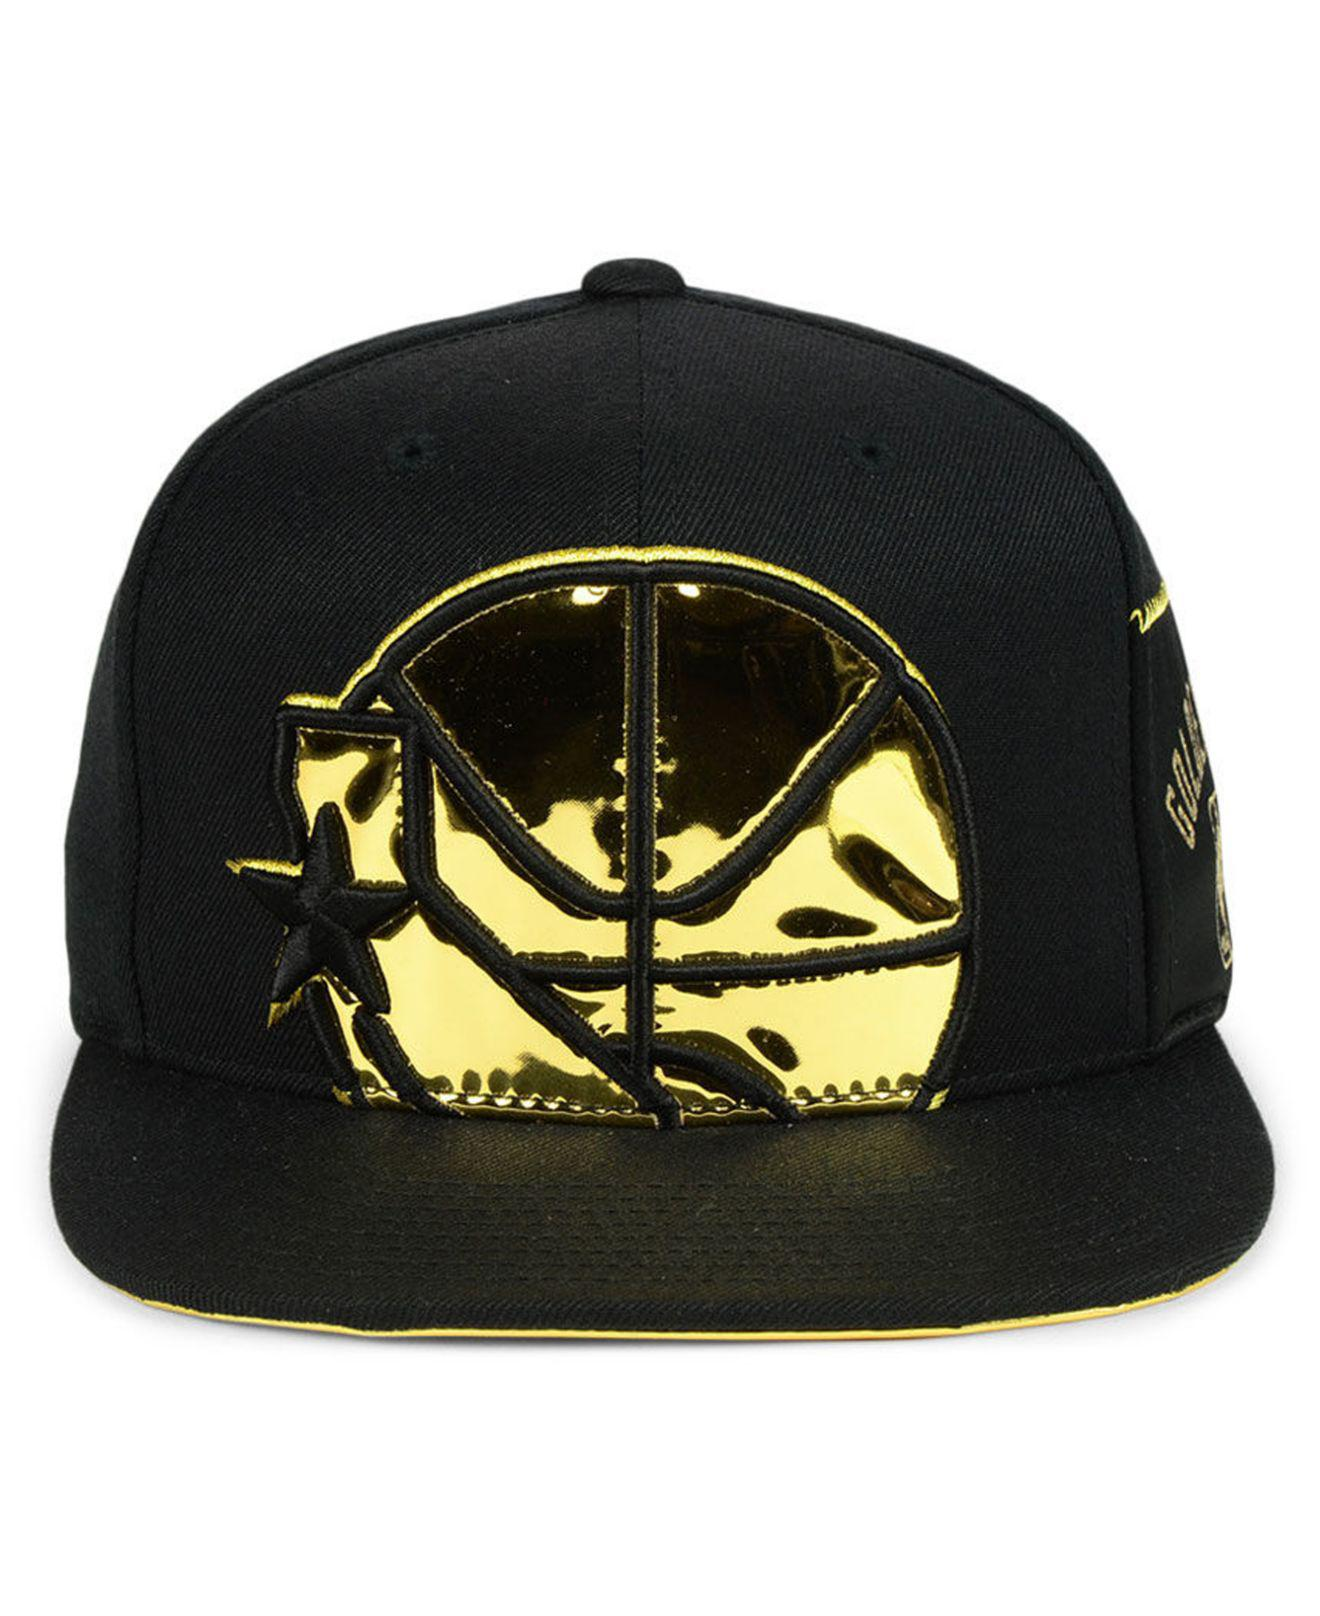 9311cc1d433548 ... store lyst mitchell ness golden state warriors patent cropped snapback  52cc0 f8297